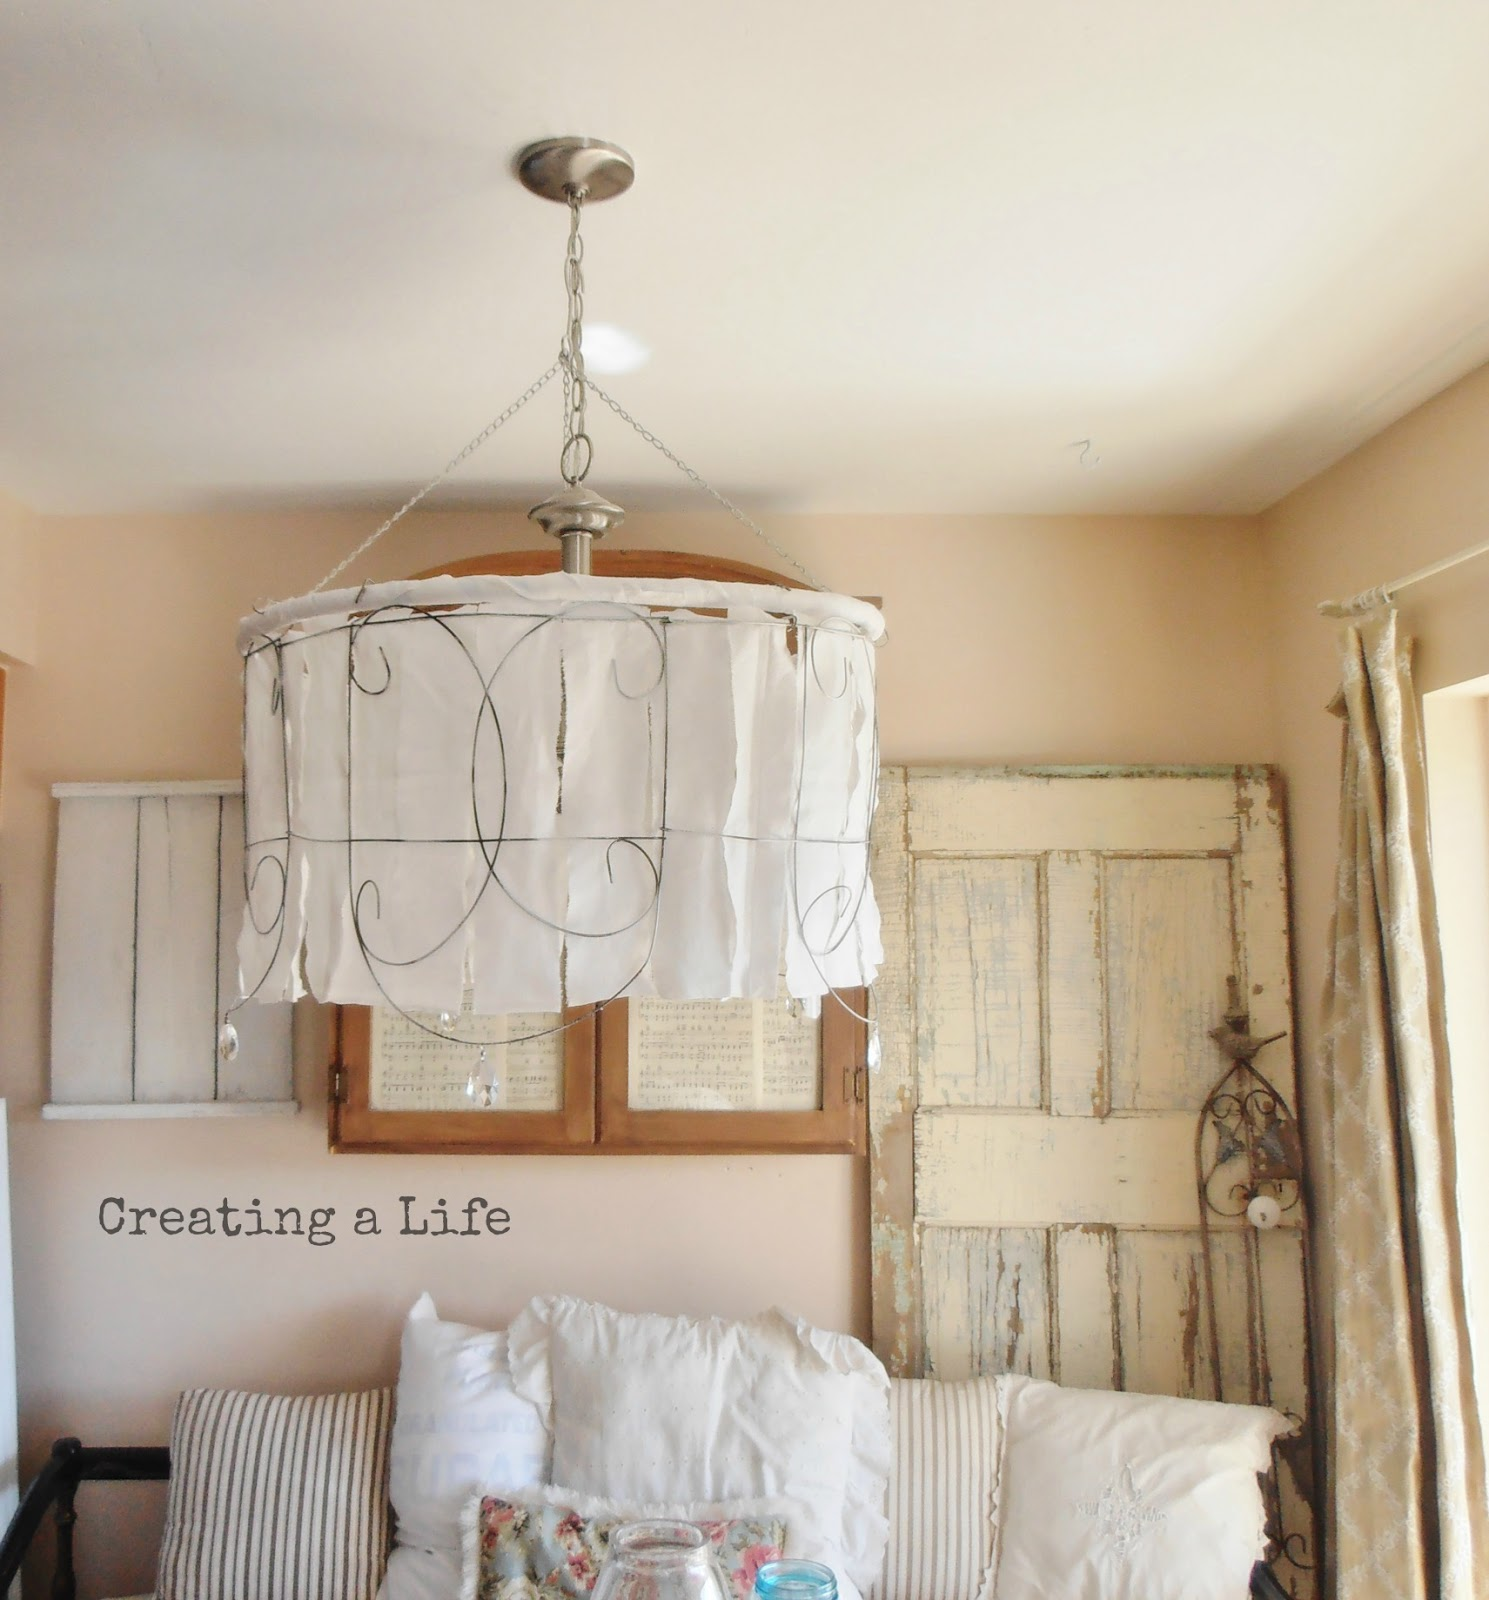 How to cover a wire lampshade frame with fabric to make a how to cover a wire lampshade frame with fabric creating a life junk style diy garden fencing shade keyboard keysfo Images